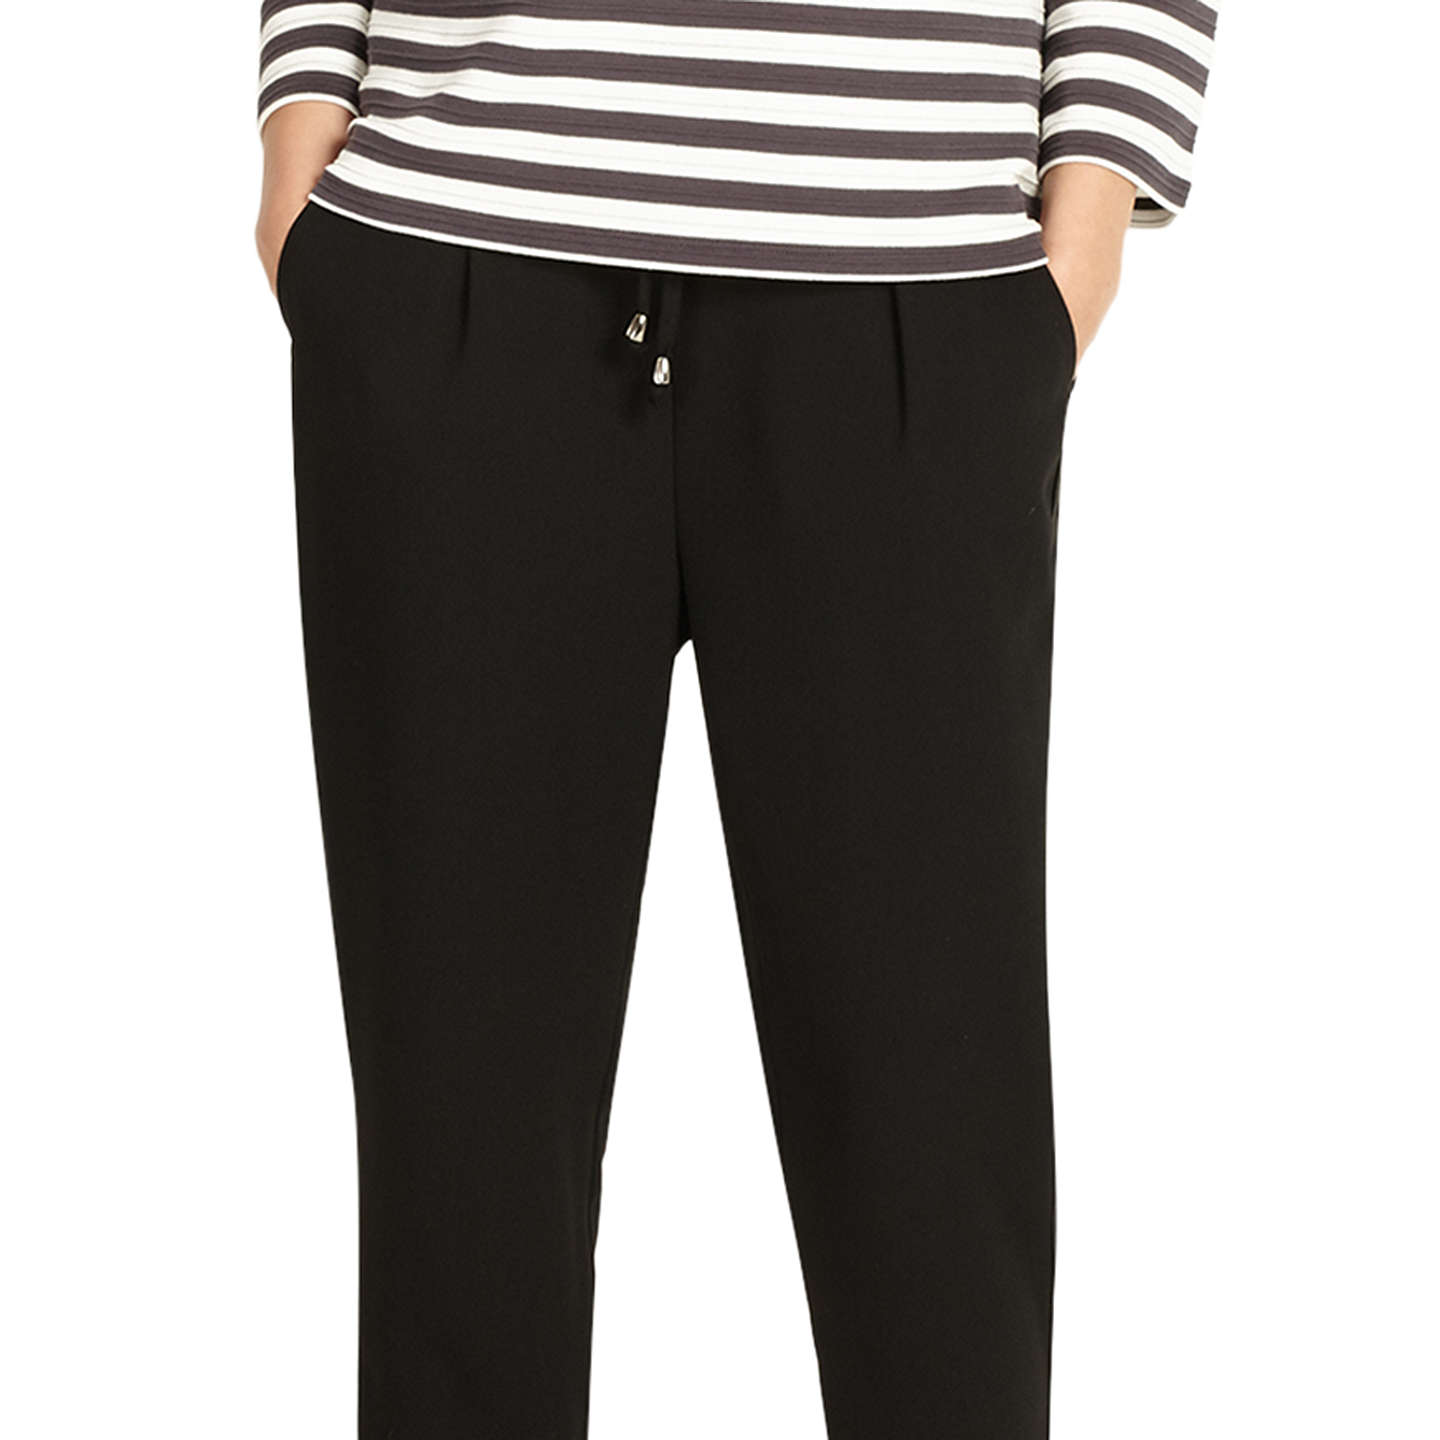 BuyPhase Eight Jayne Satin Stripe Trousers, Black, 8 Online at johnlewis.com